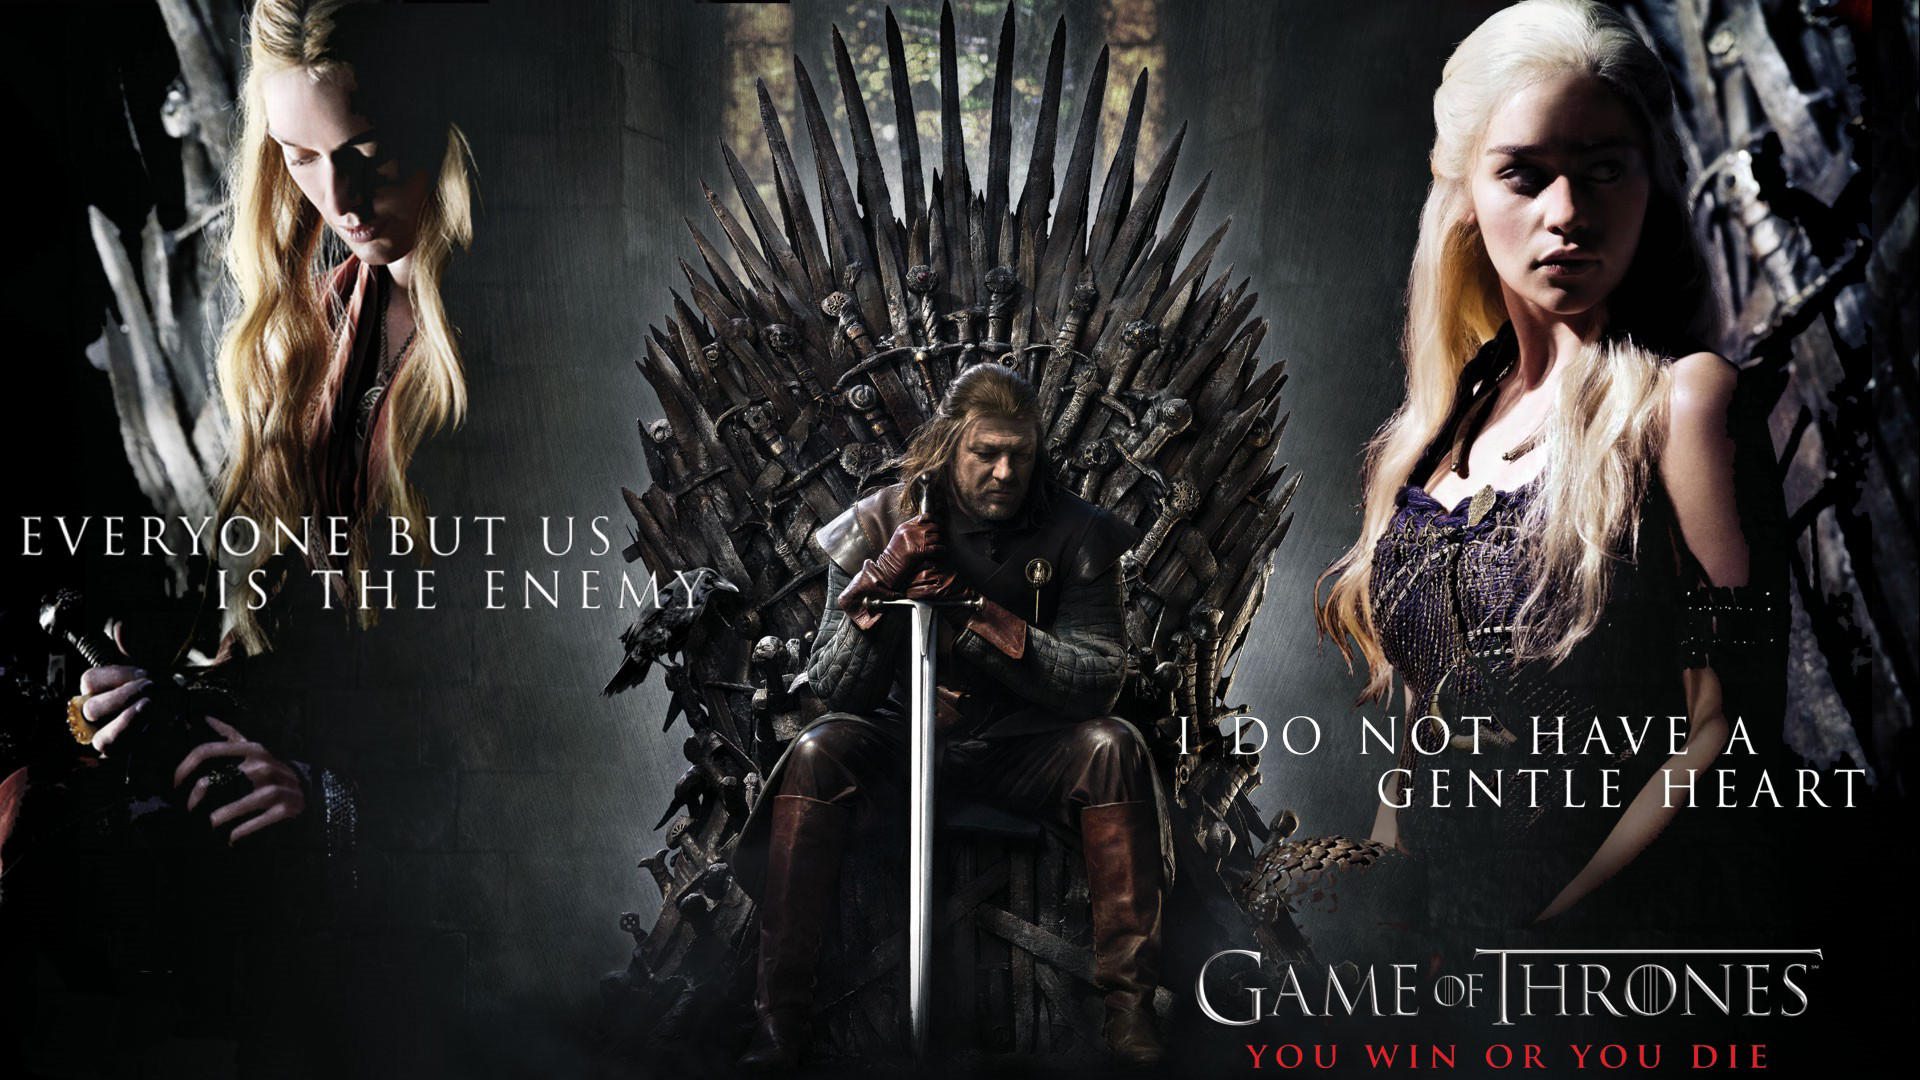 Game Of Thrones Daenerys Targaryen Blonde Emilia Clarke Sean Bean